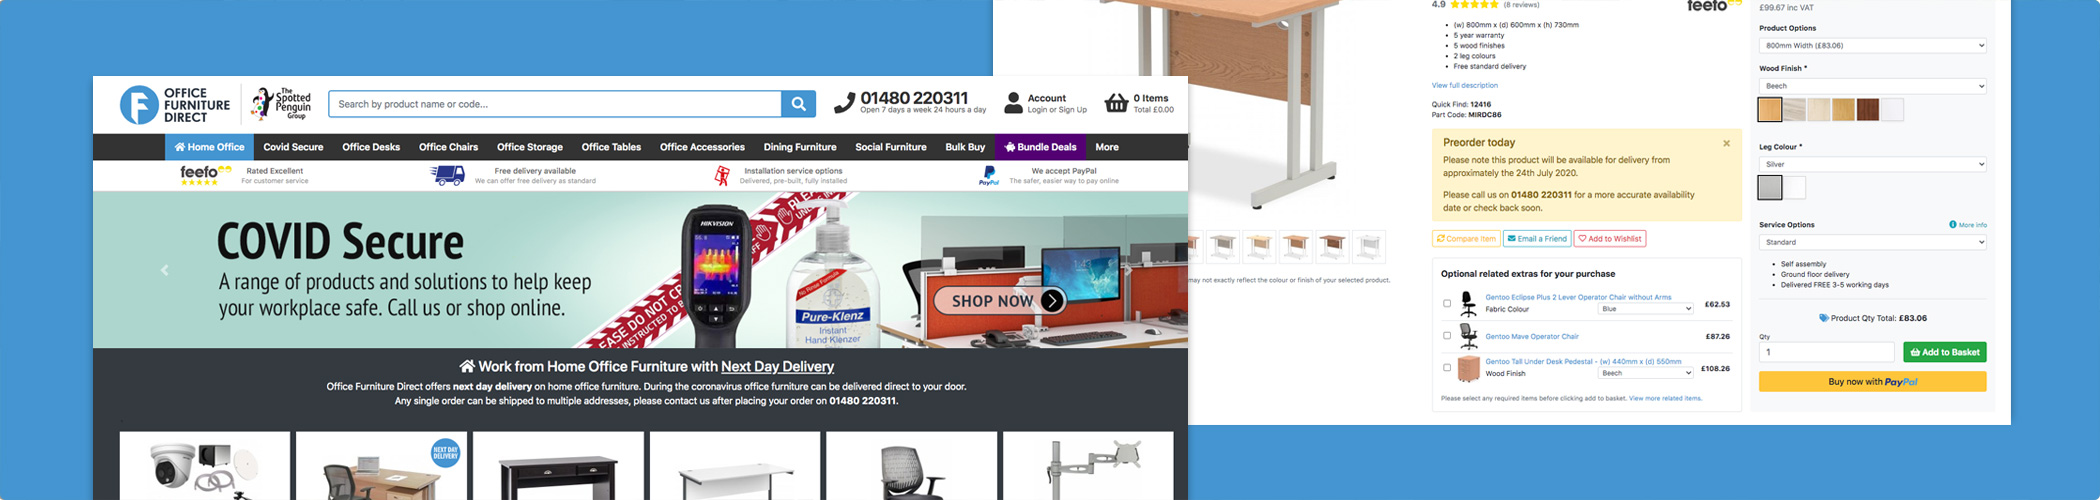 Order your furniture online from NAOS's eCommerce partner, Office Furniture Direct